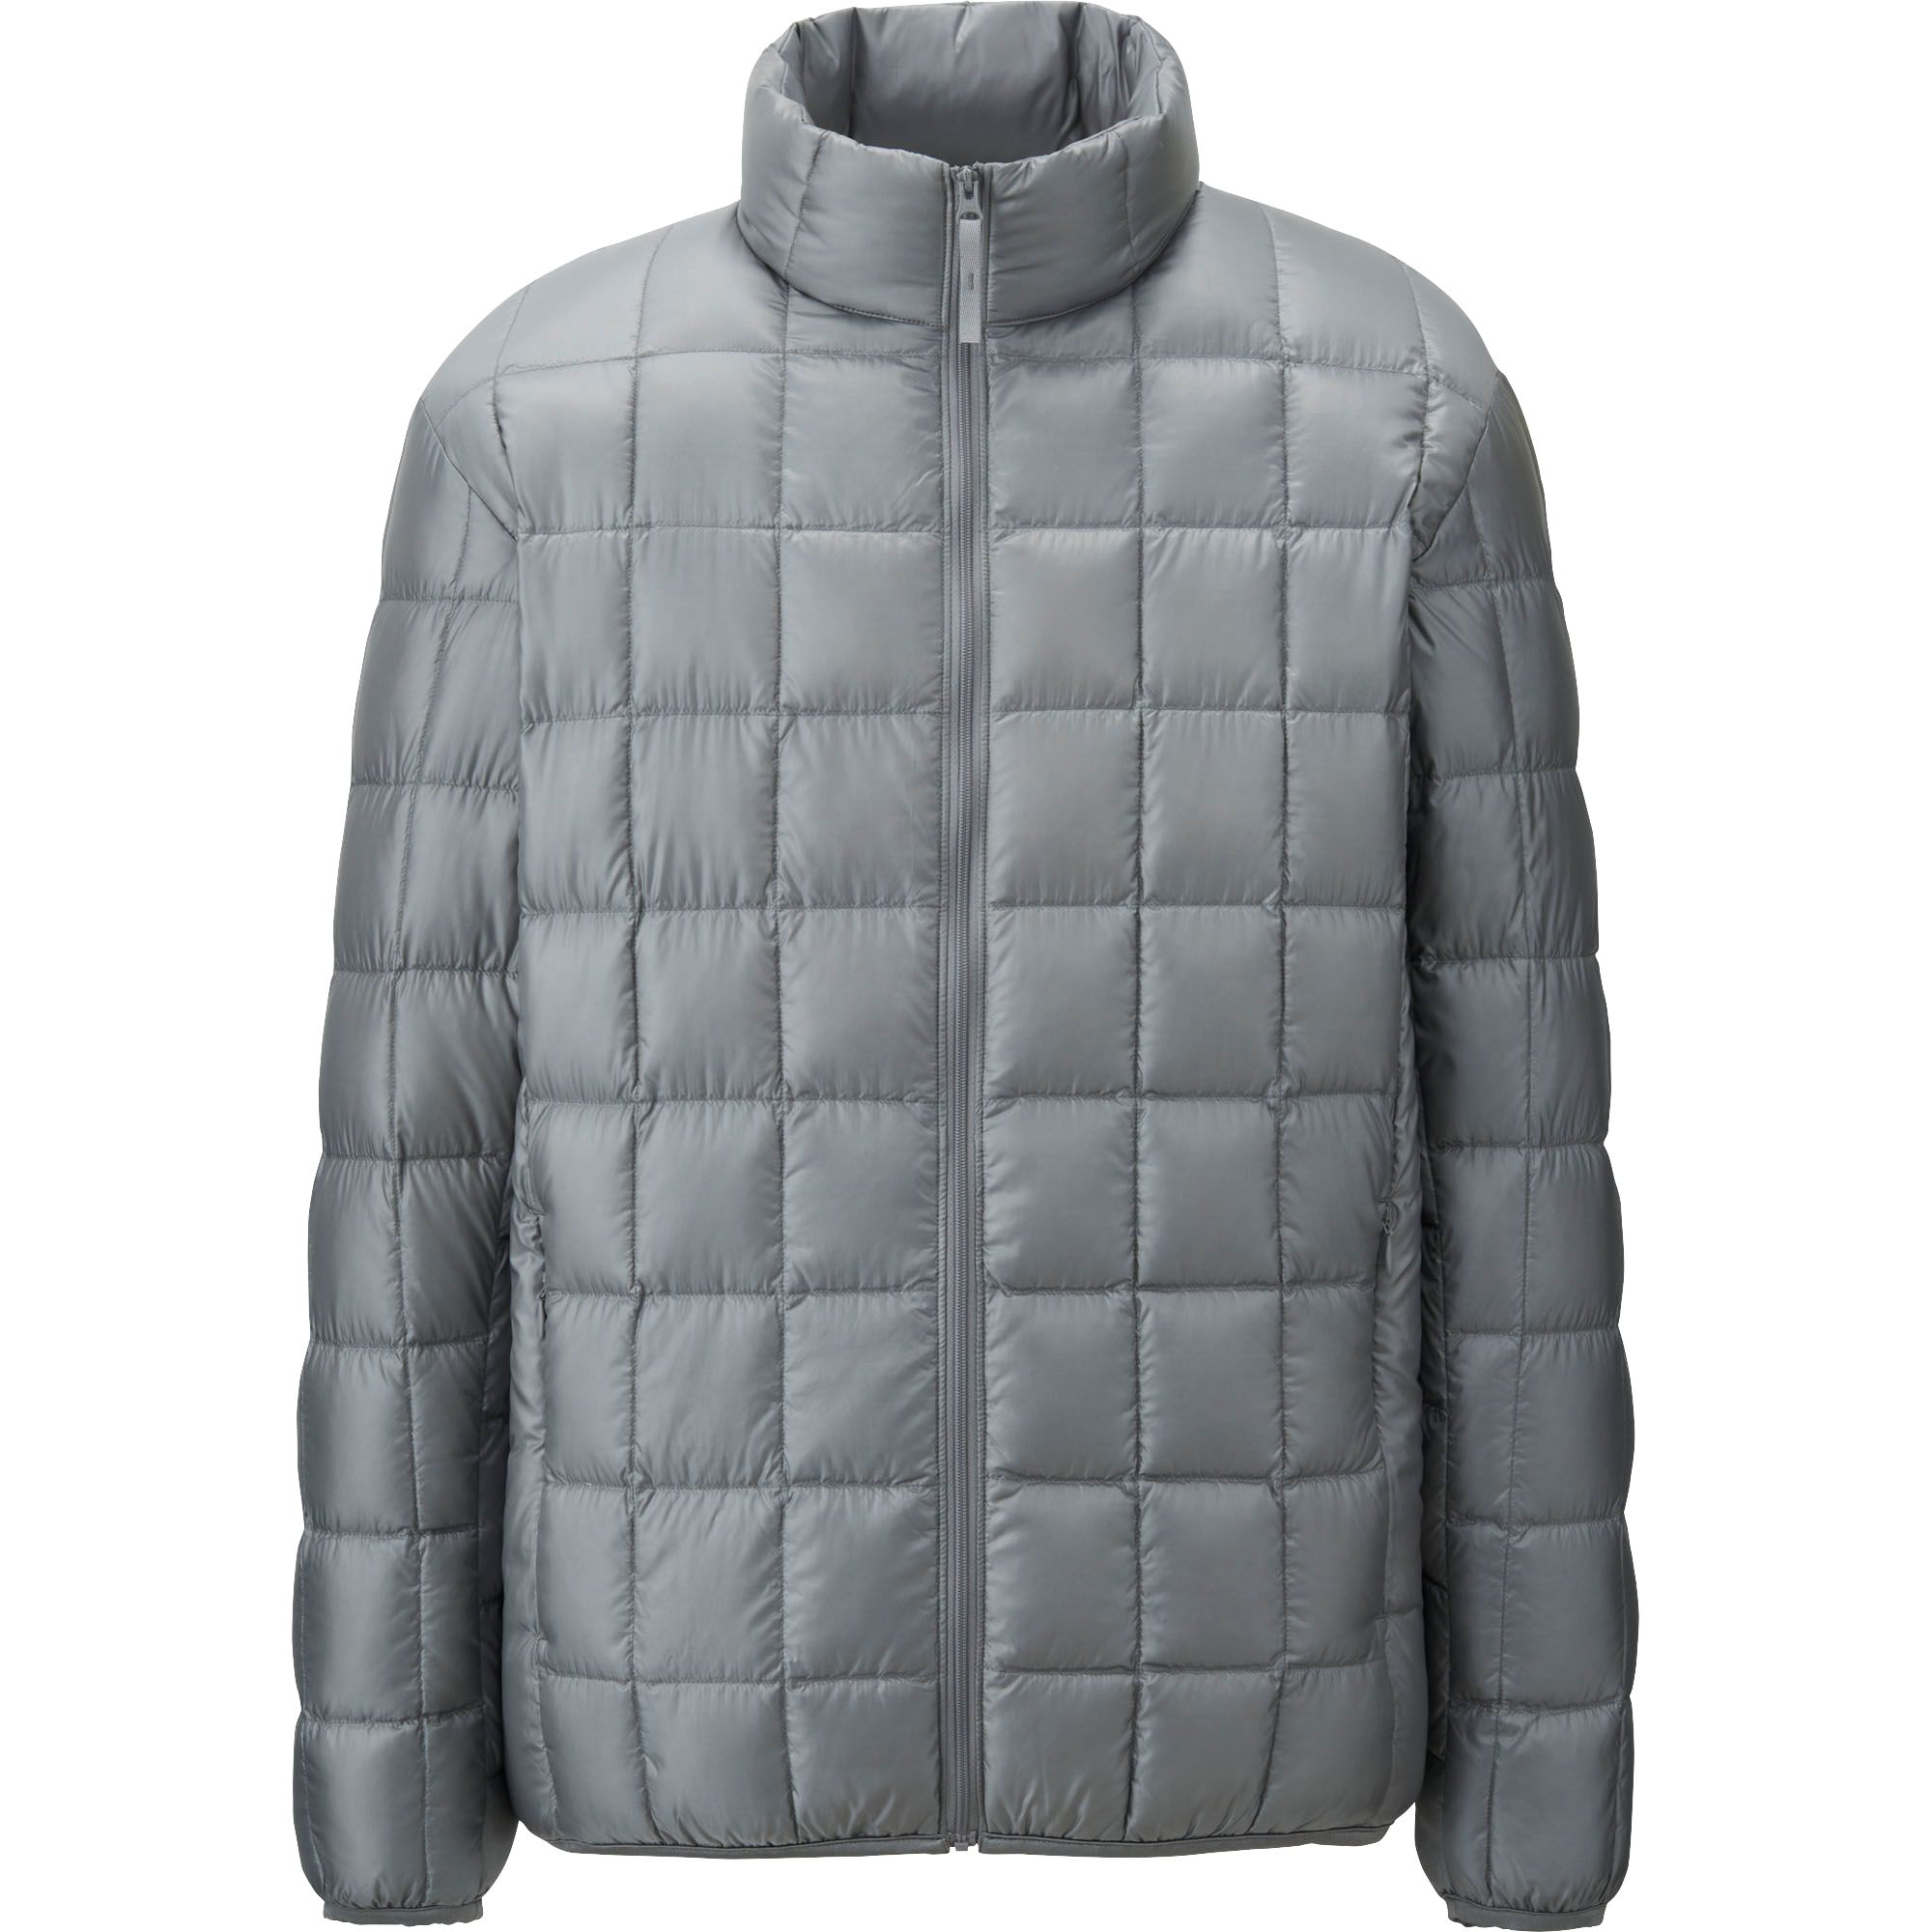 uniqlo ultra light down square quilted jacket in gray for men lyst. Black Bedroom Furniture Sets. Home Design Ideas